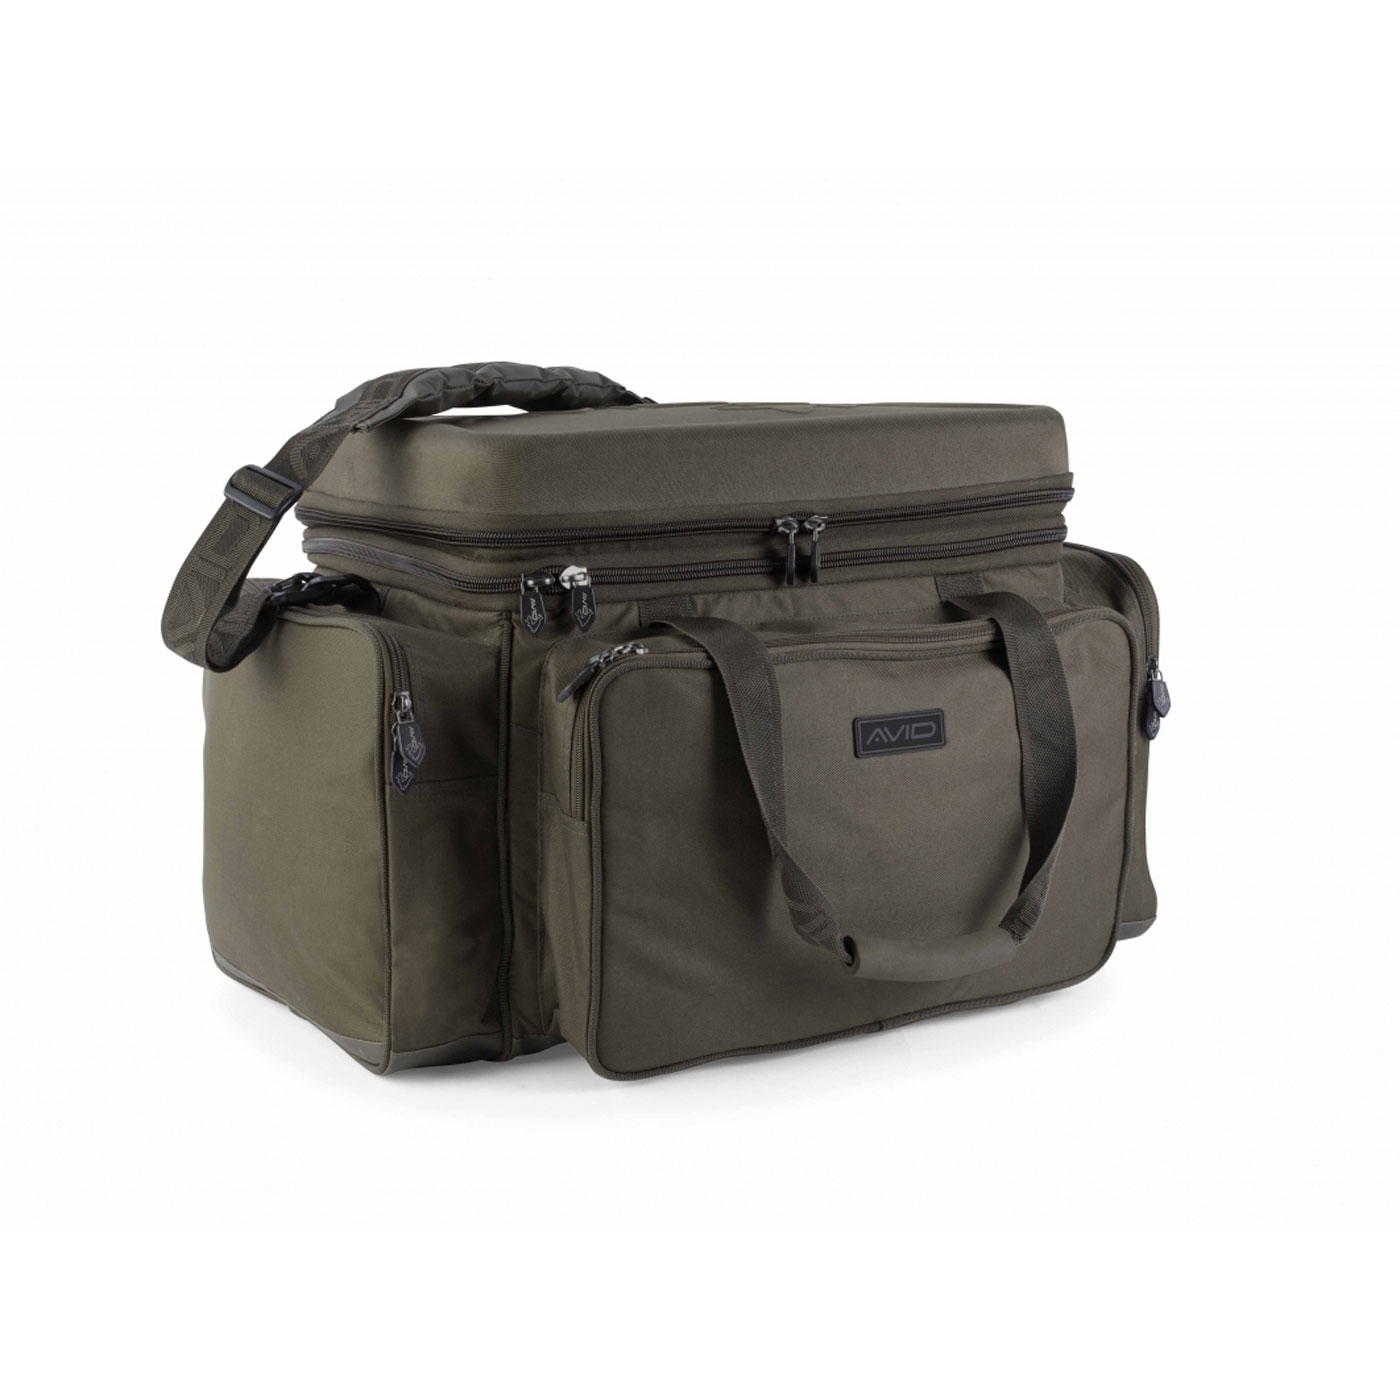 Avid A Spec Carryall – Large